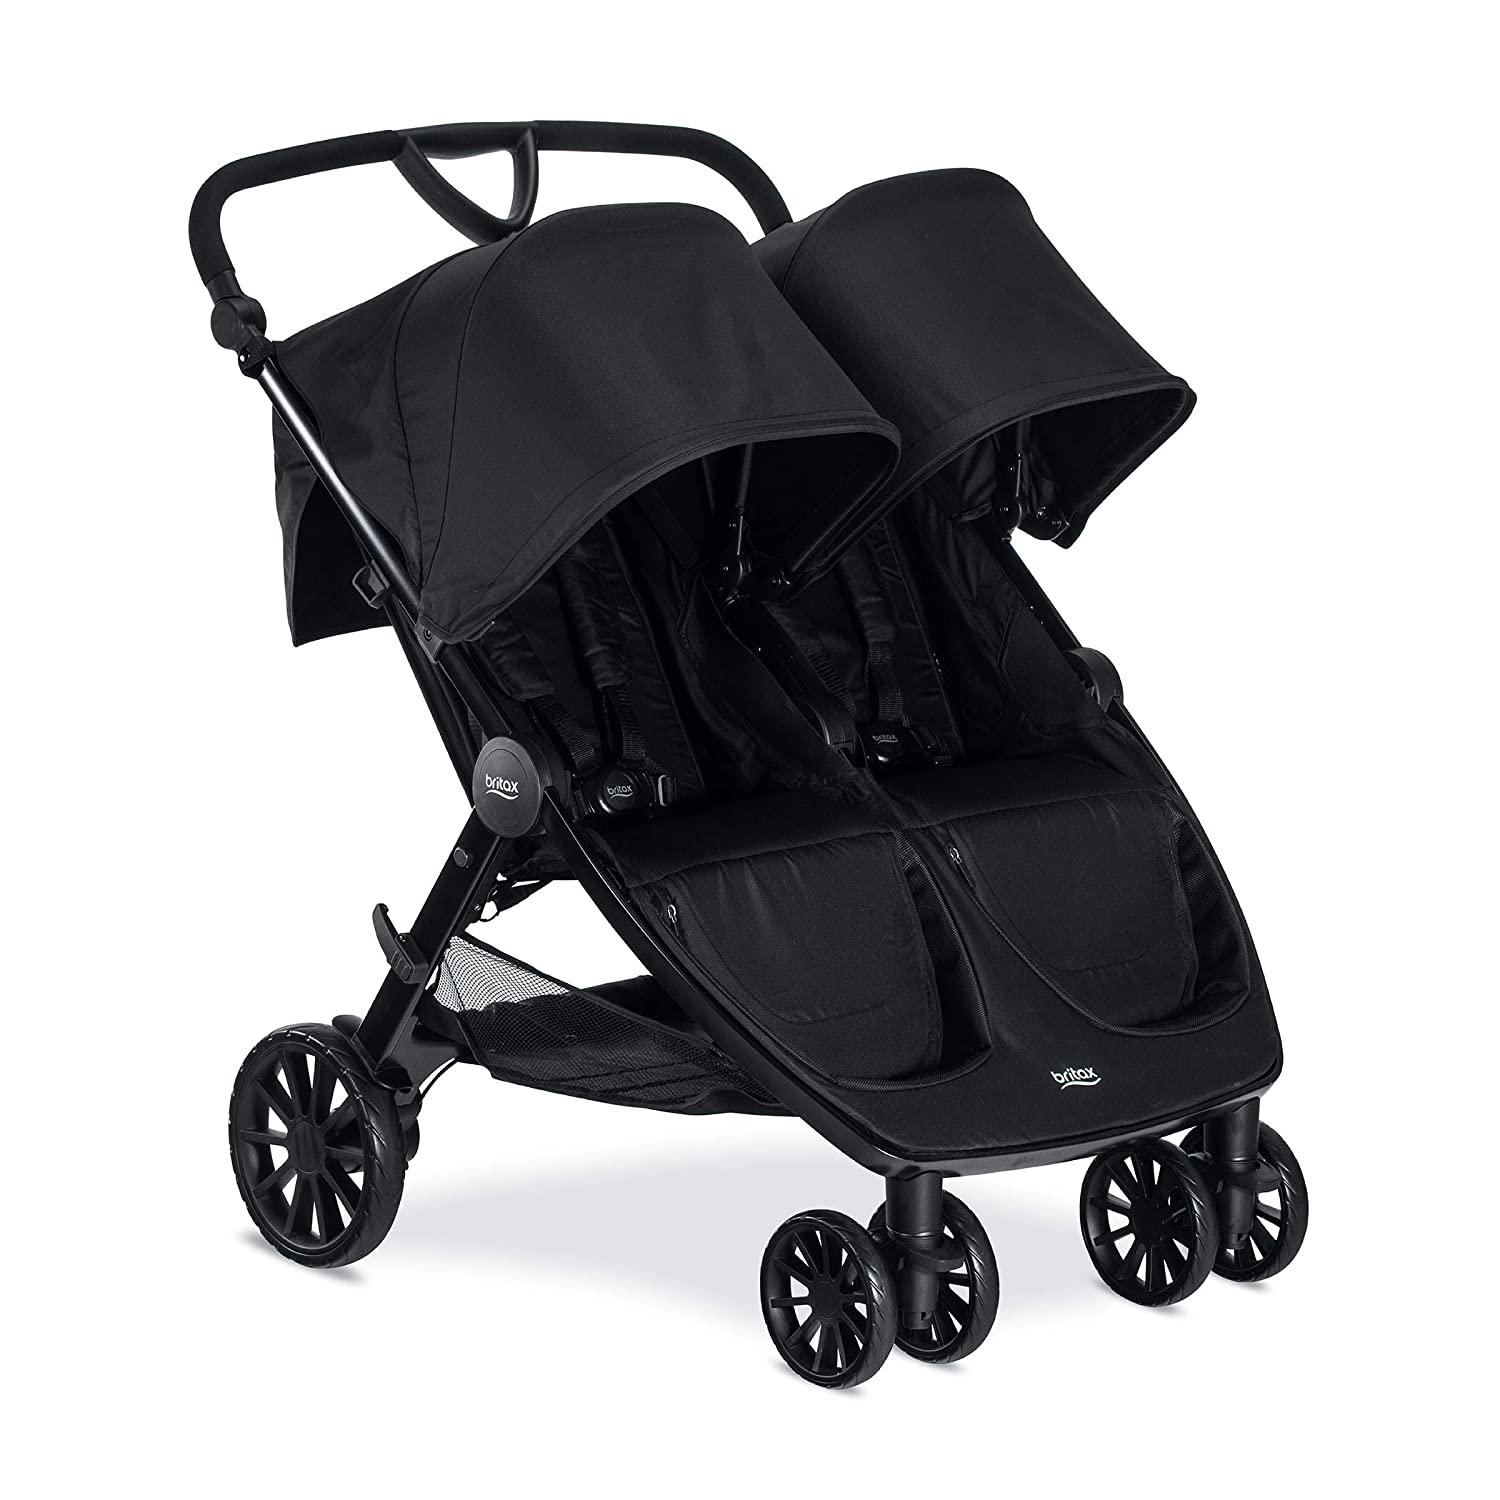 Image result for Britax B Lively Double